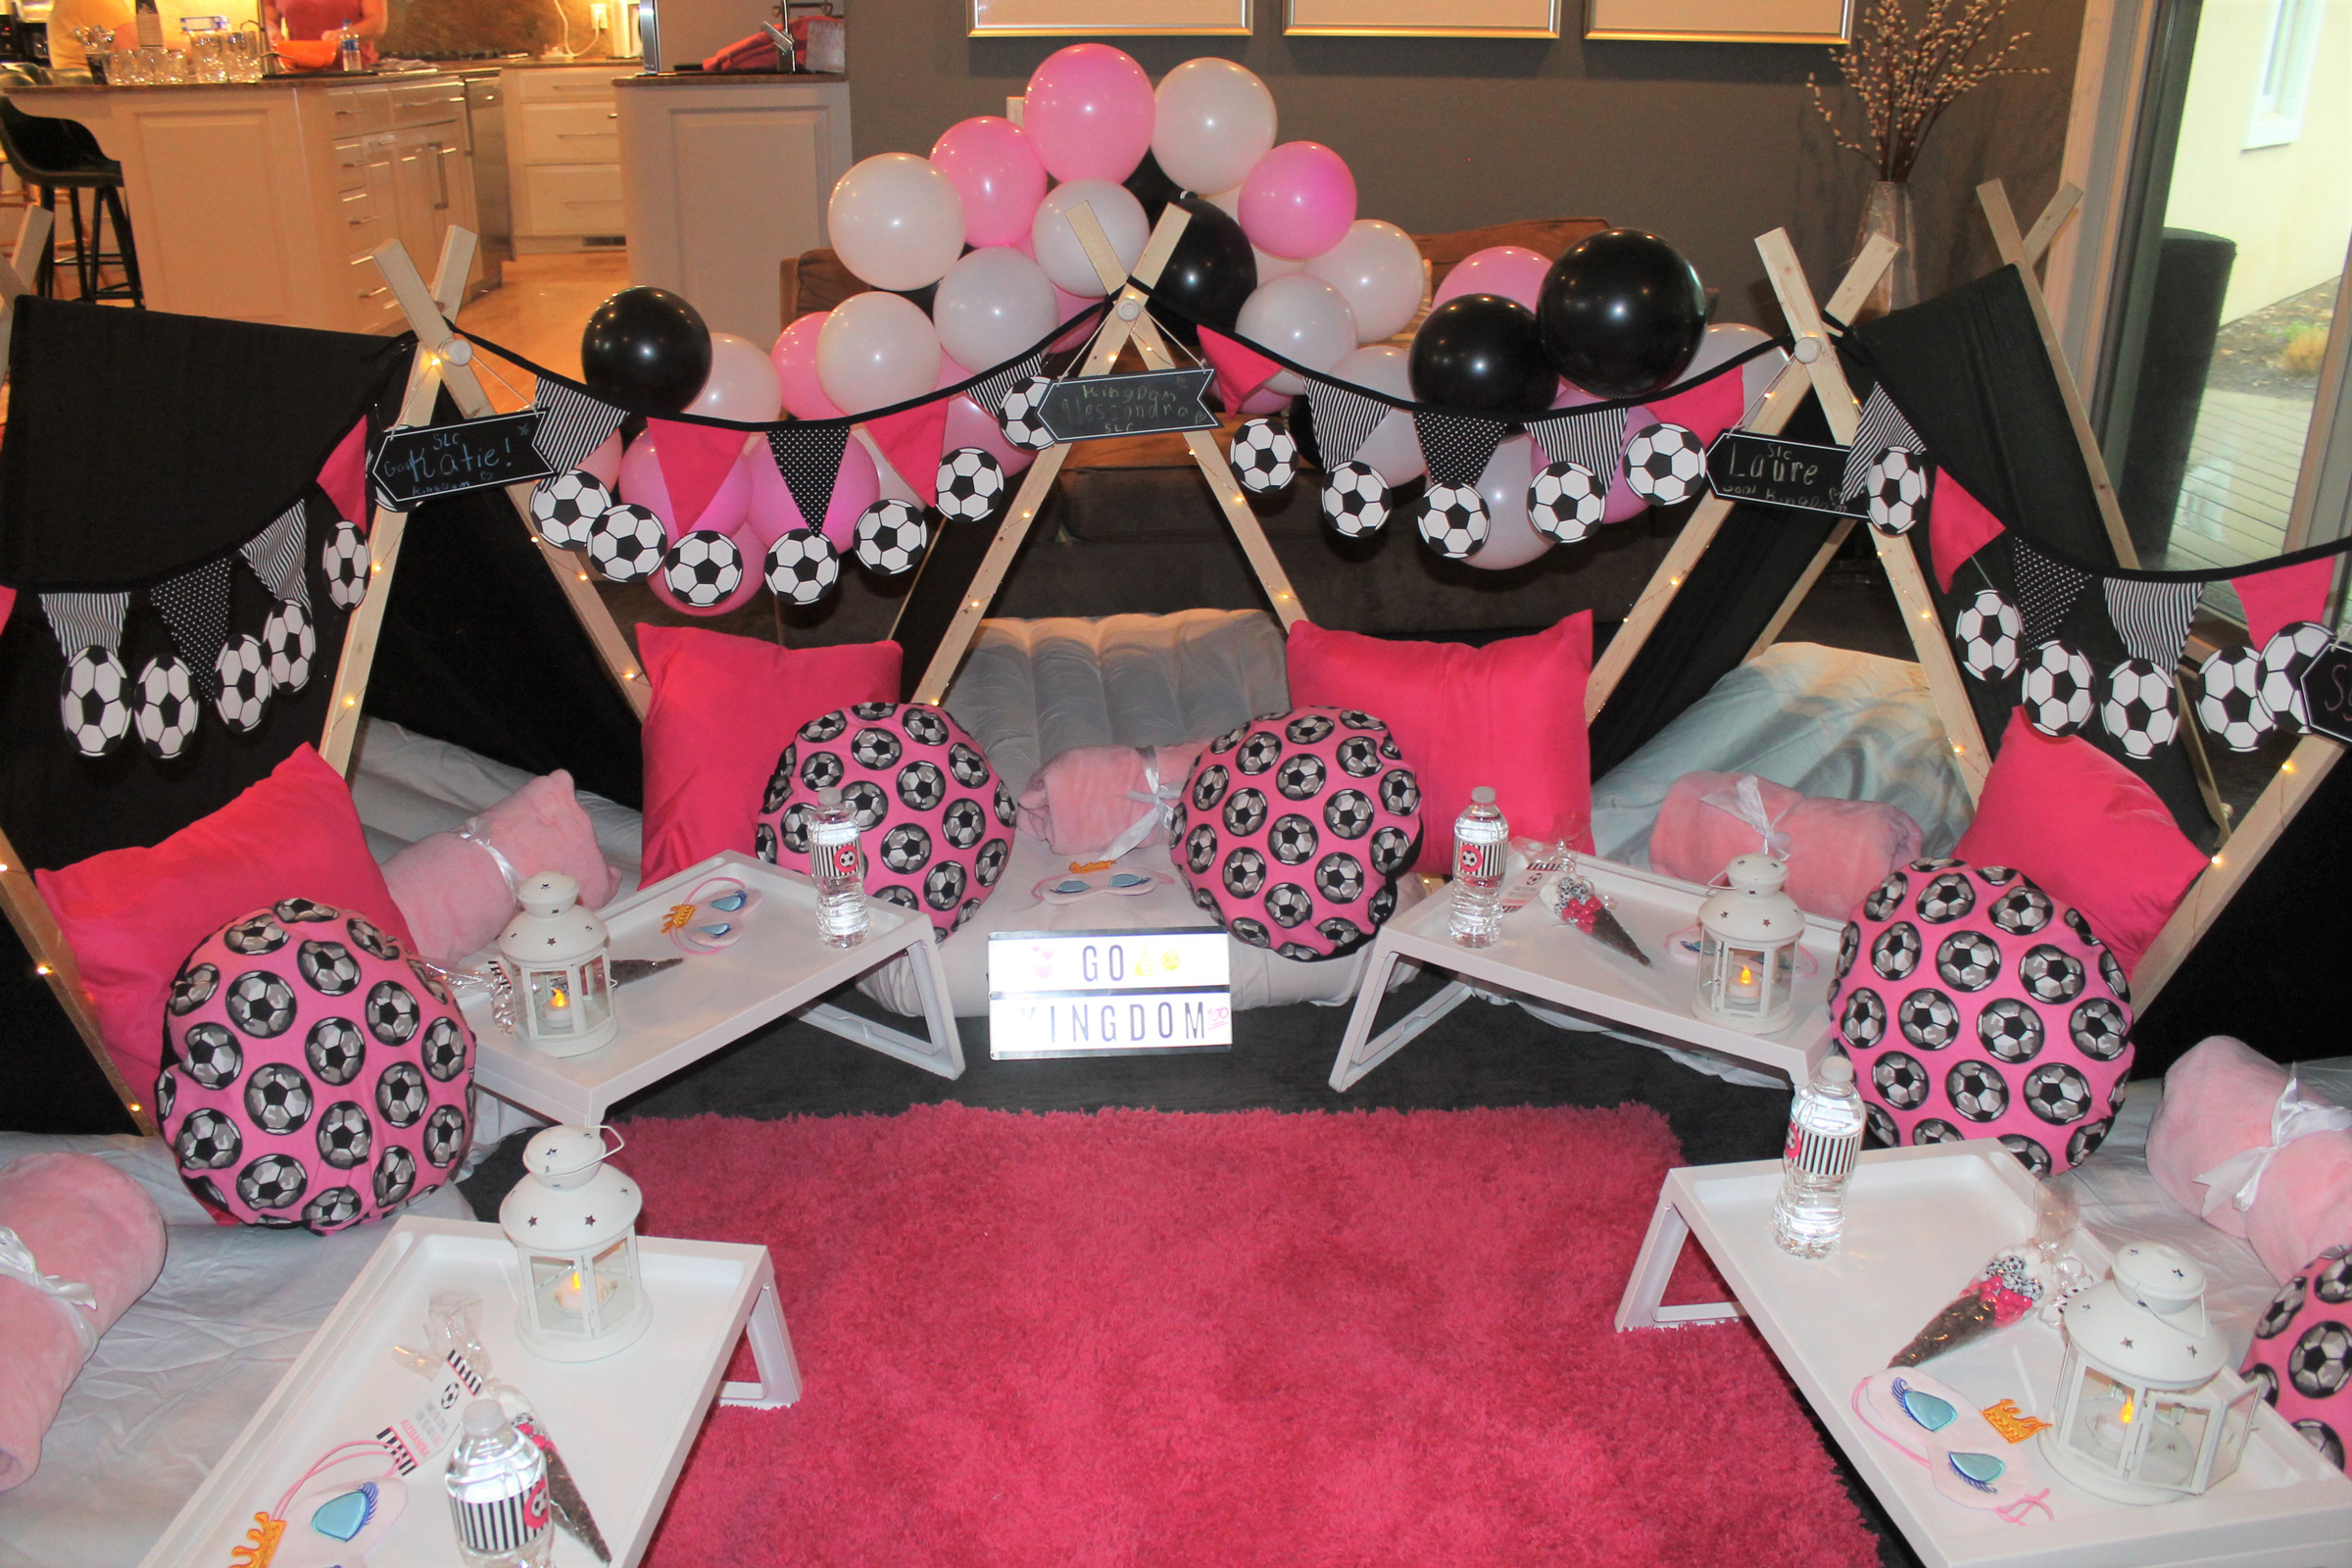 Little Dreamers soccer themed party.